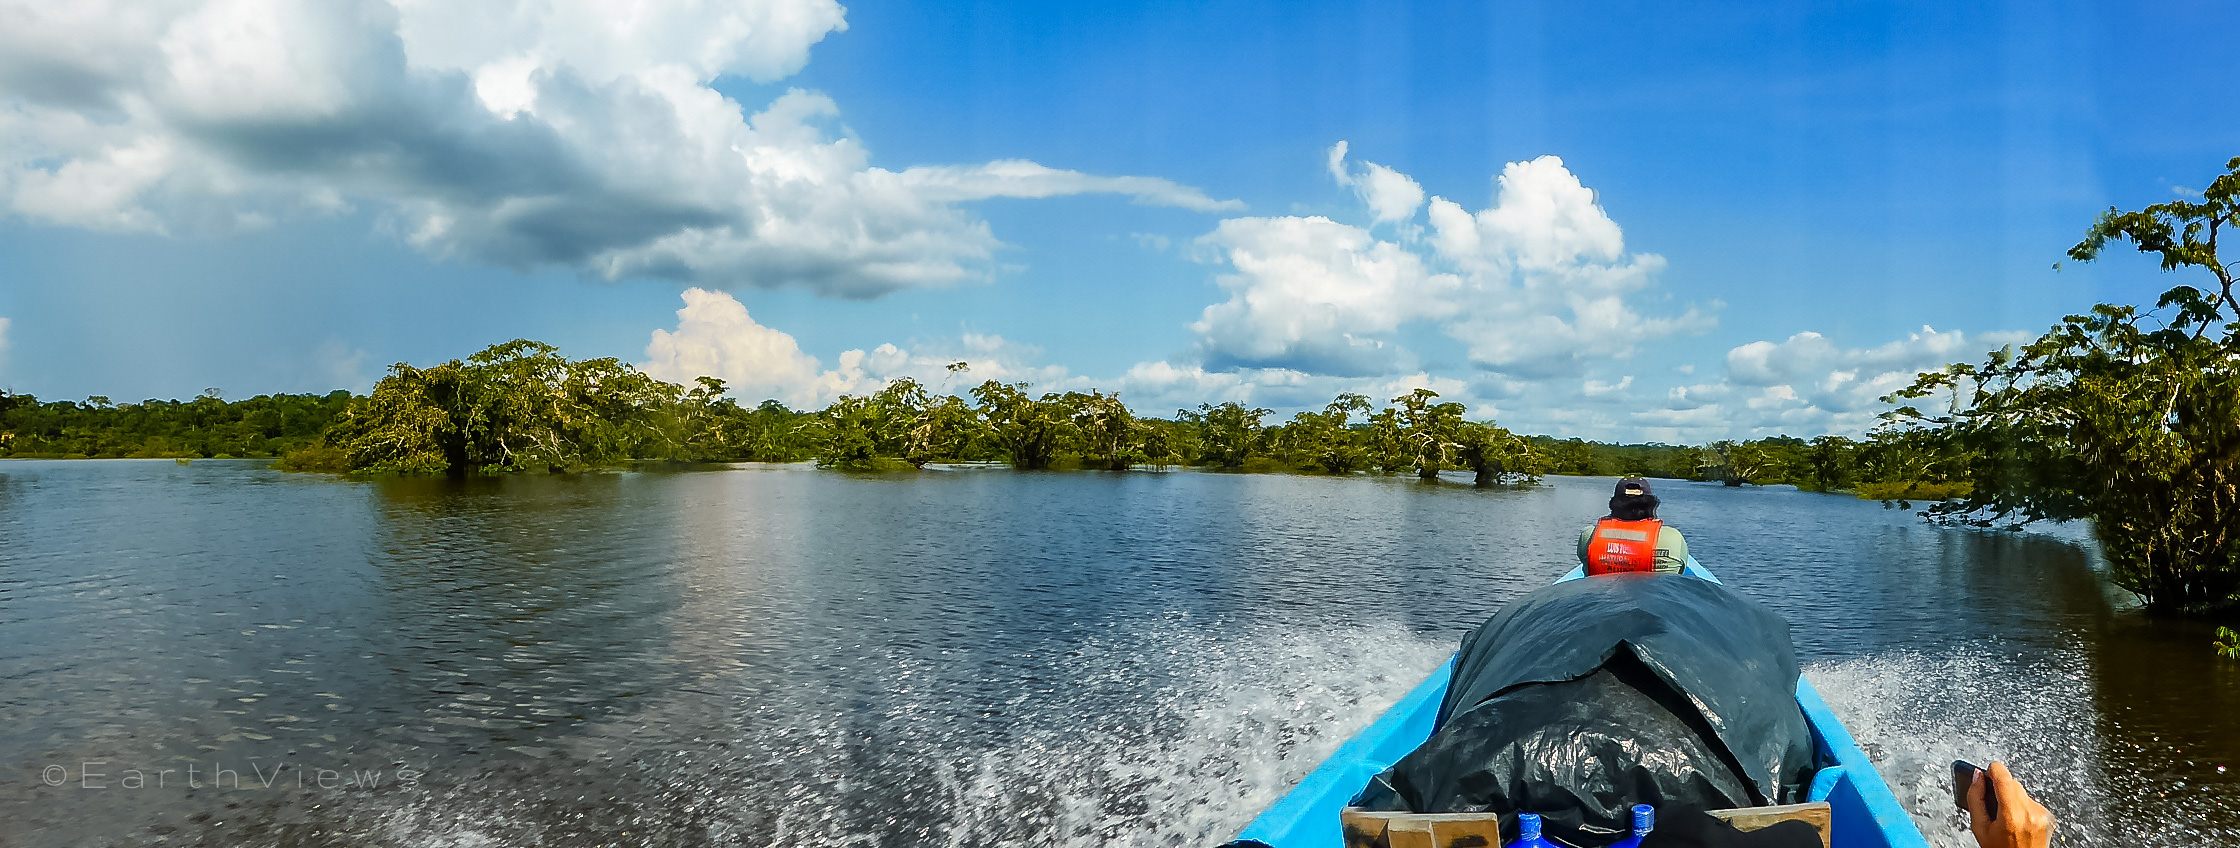 Our naturalist guide, Luis Torres, spotting wildlife in the boat's front.